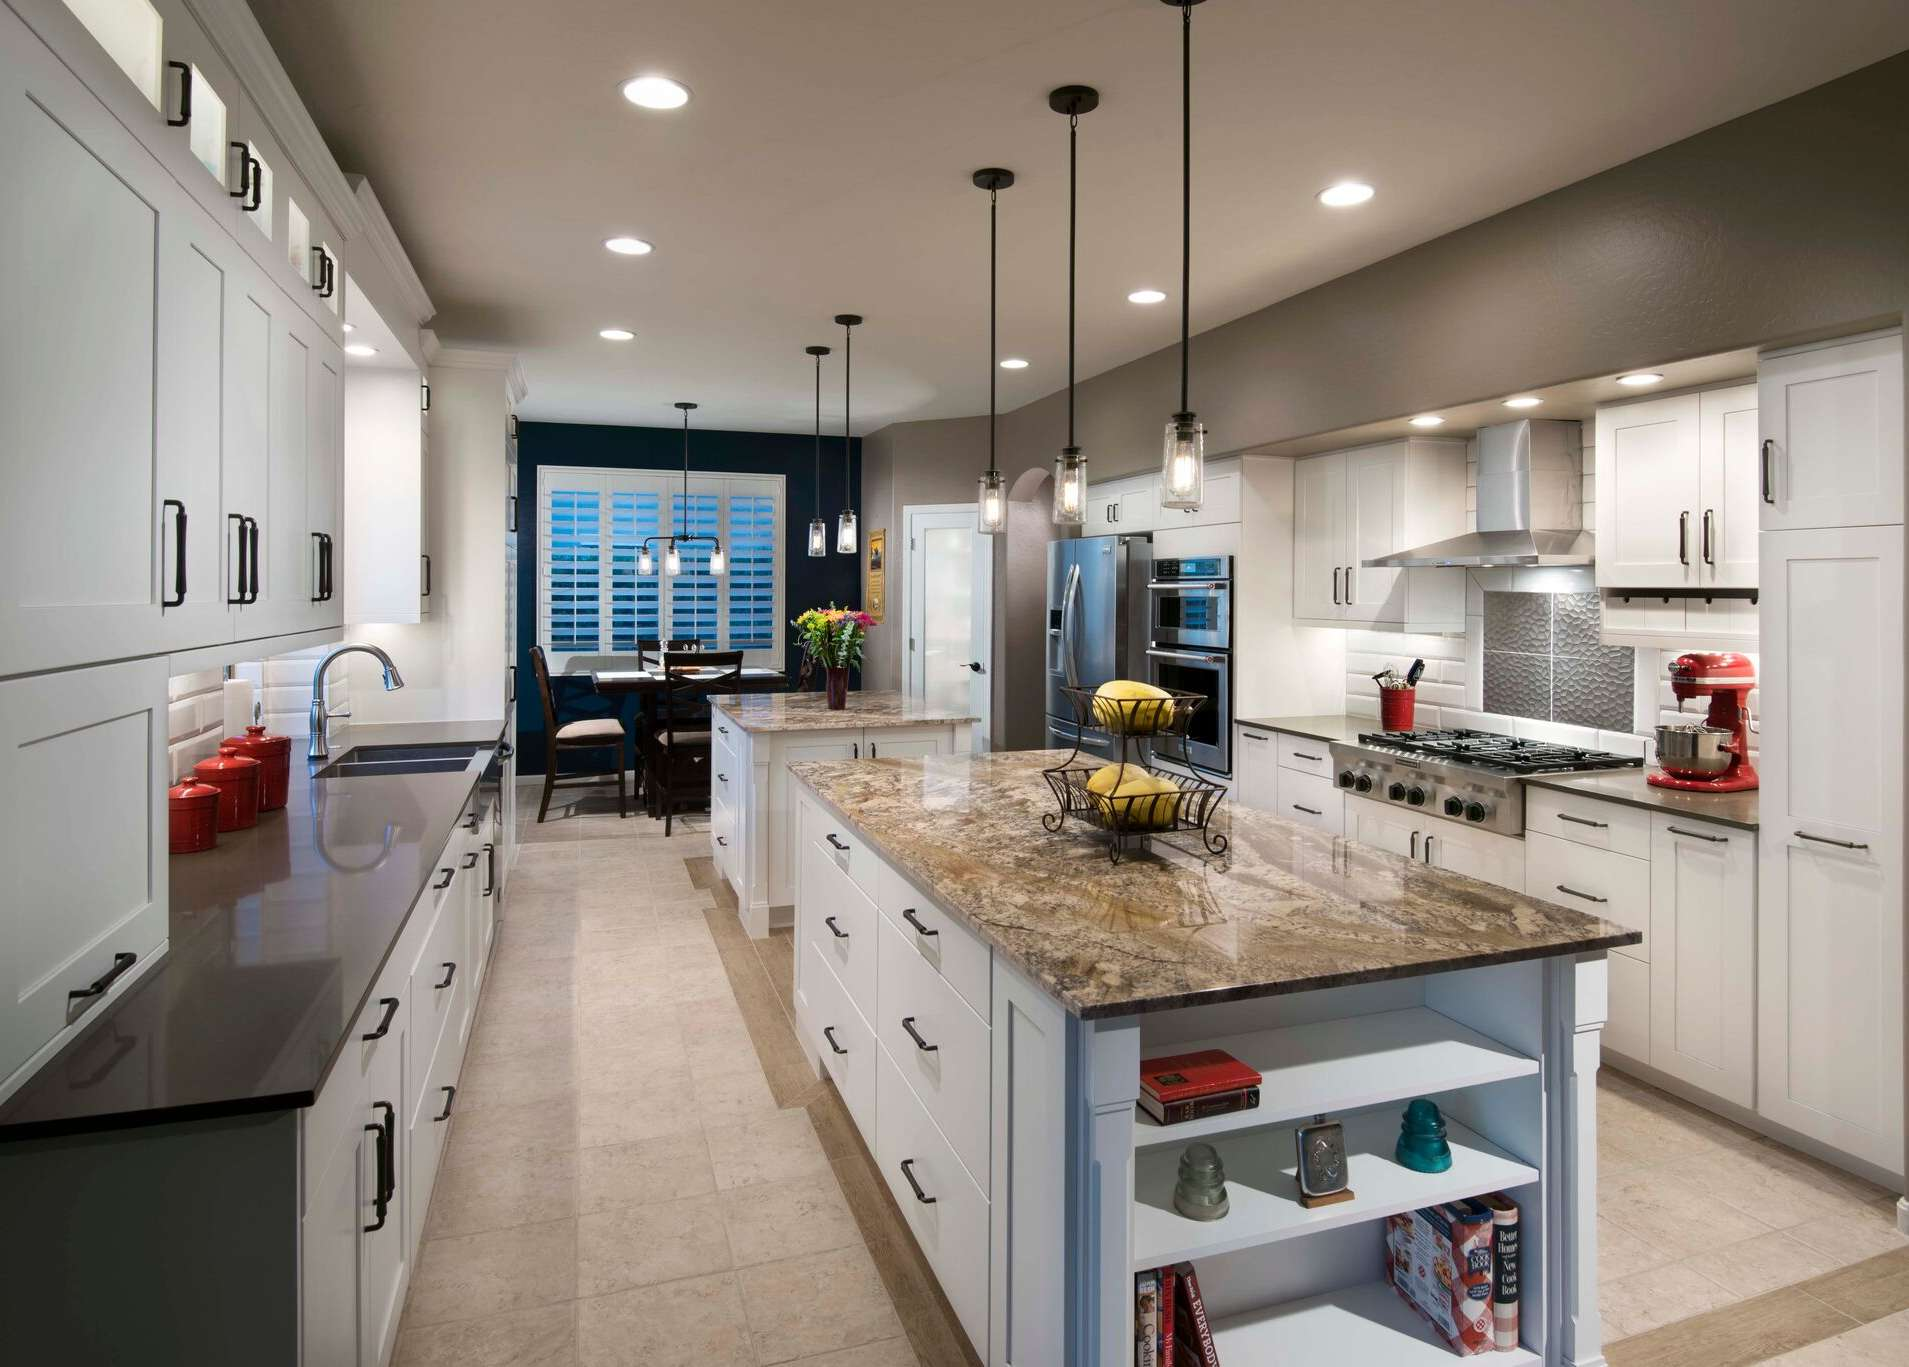 dream kitchen u0026 bath is a full service remodeling company, specializing in  kitchens IVUIOUQ